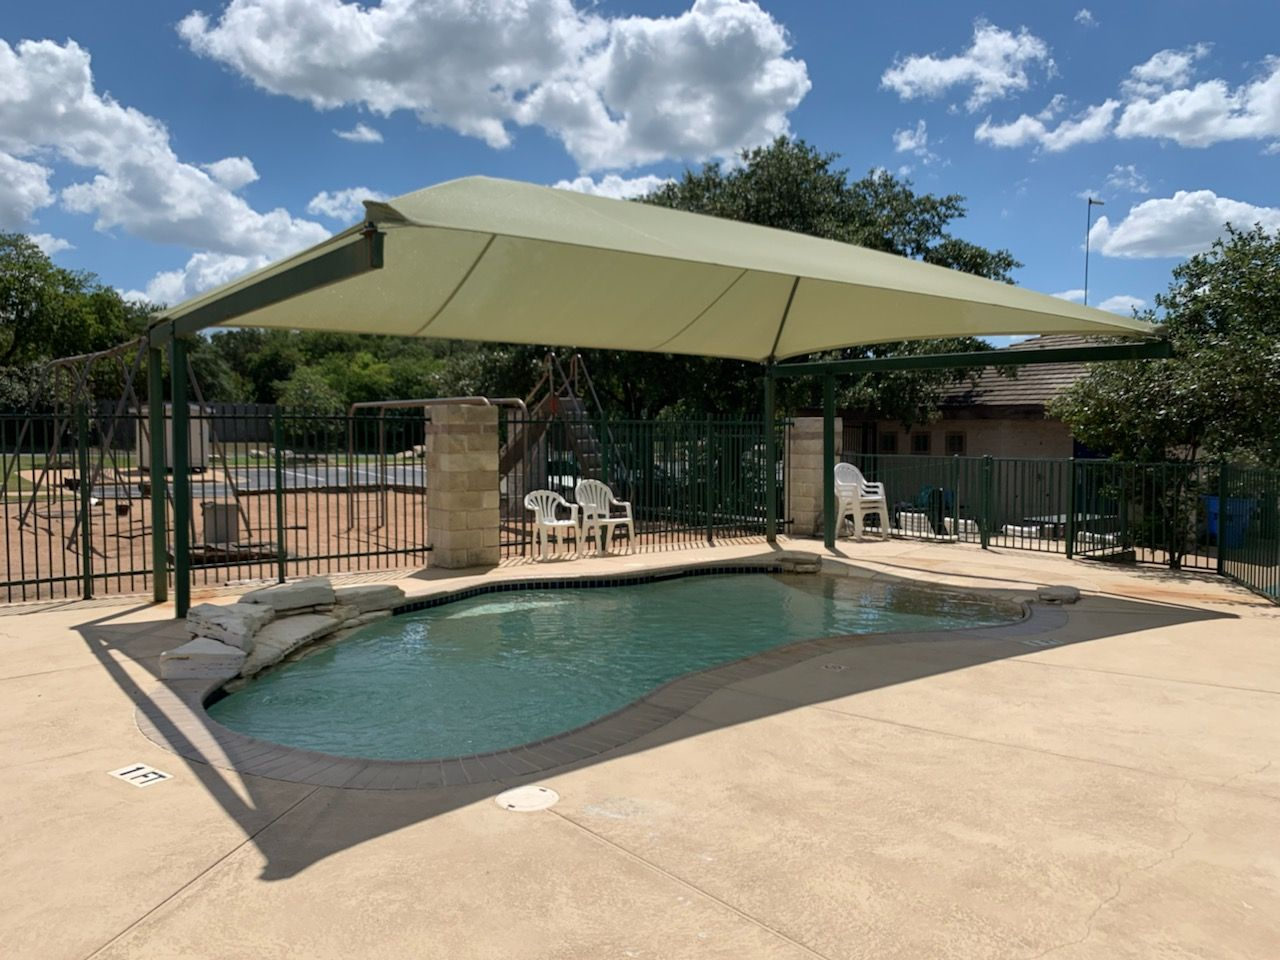 Baby Pool Shade Shade Structure Pool Shade Pool